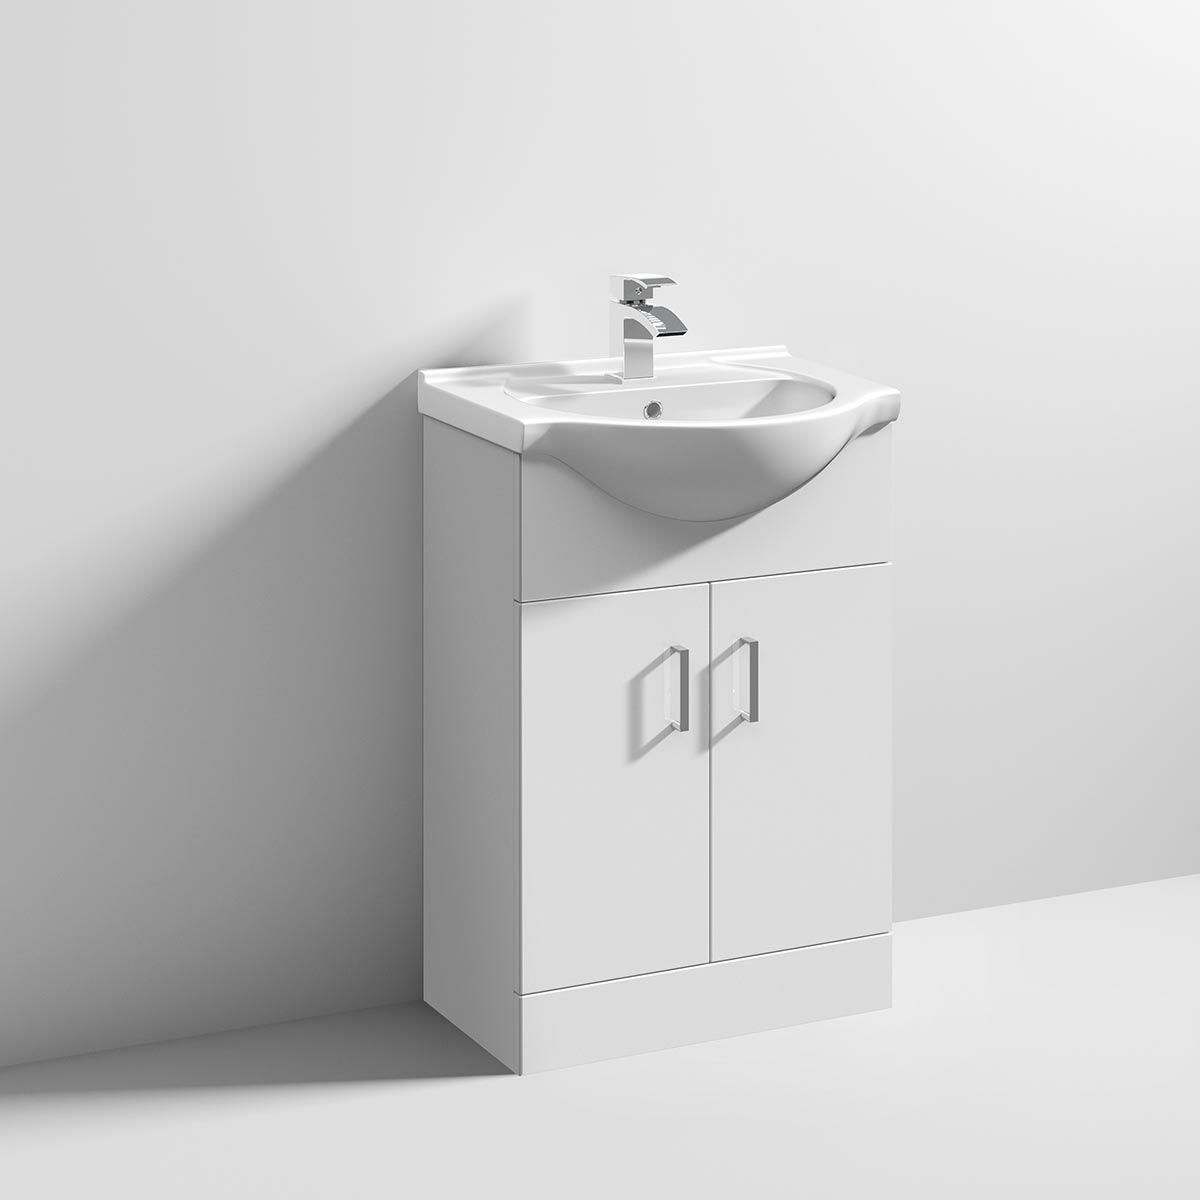 Nuie High Gloss White Vanity Unit with Standard Basin 550mm